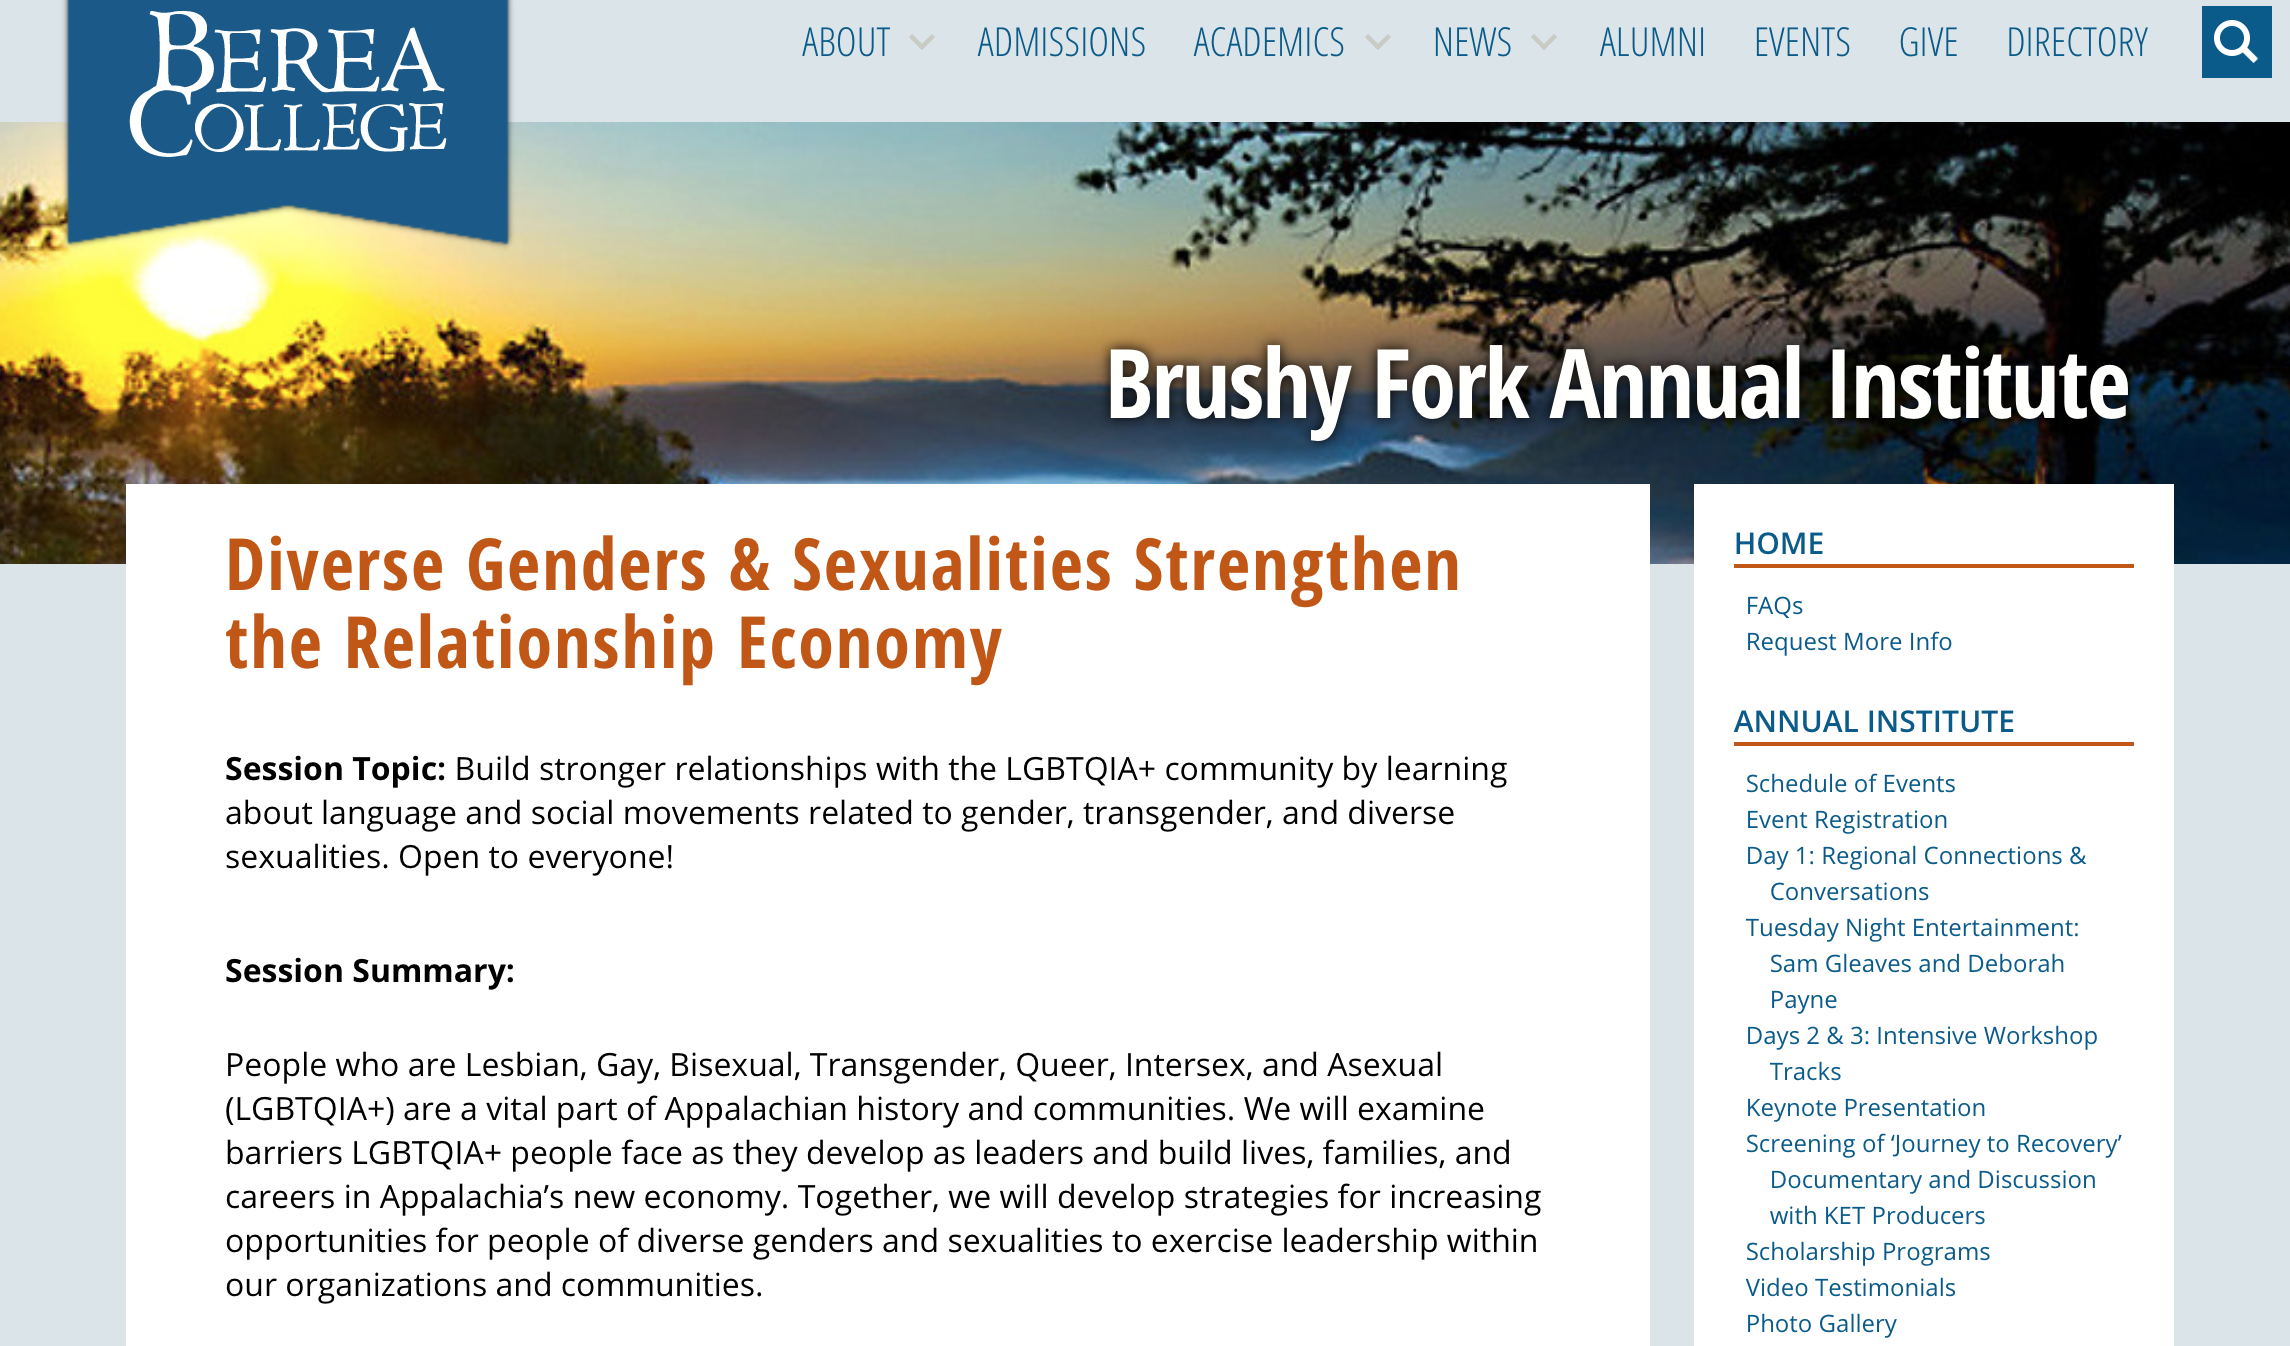 Workshop offered as part of the 2017  Brushy Fork Institute  at Berea College in Kentucky: Diverse Genders & Sexualities Strengthen the Relationship Economy.